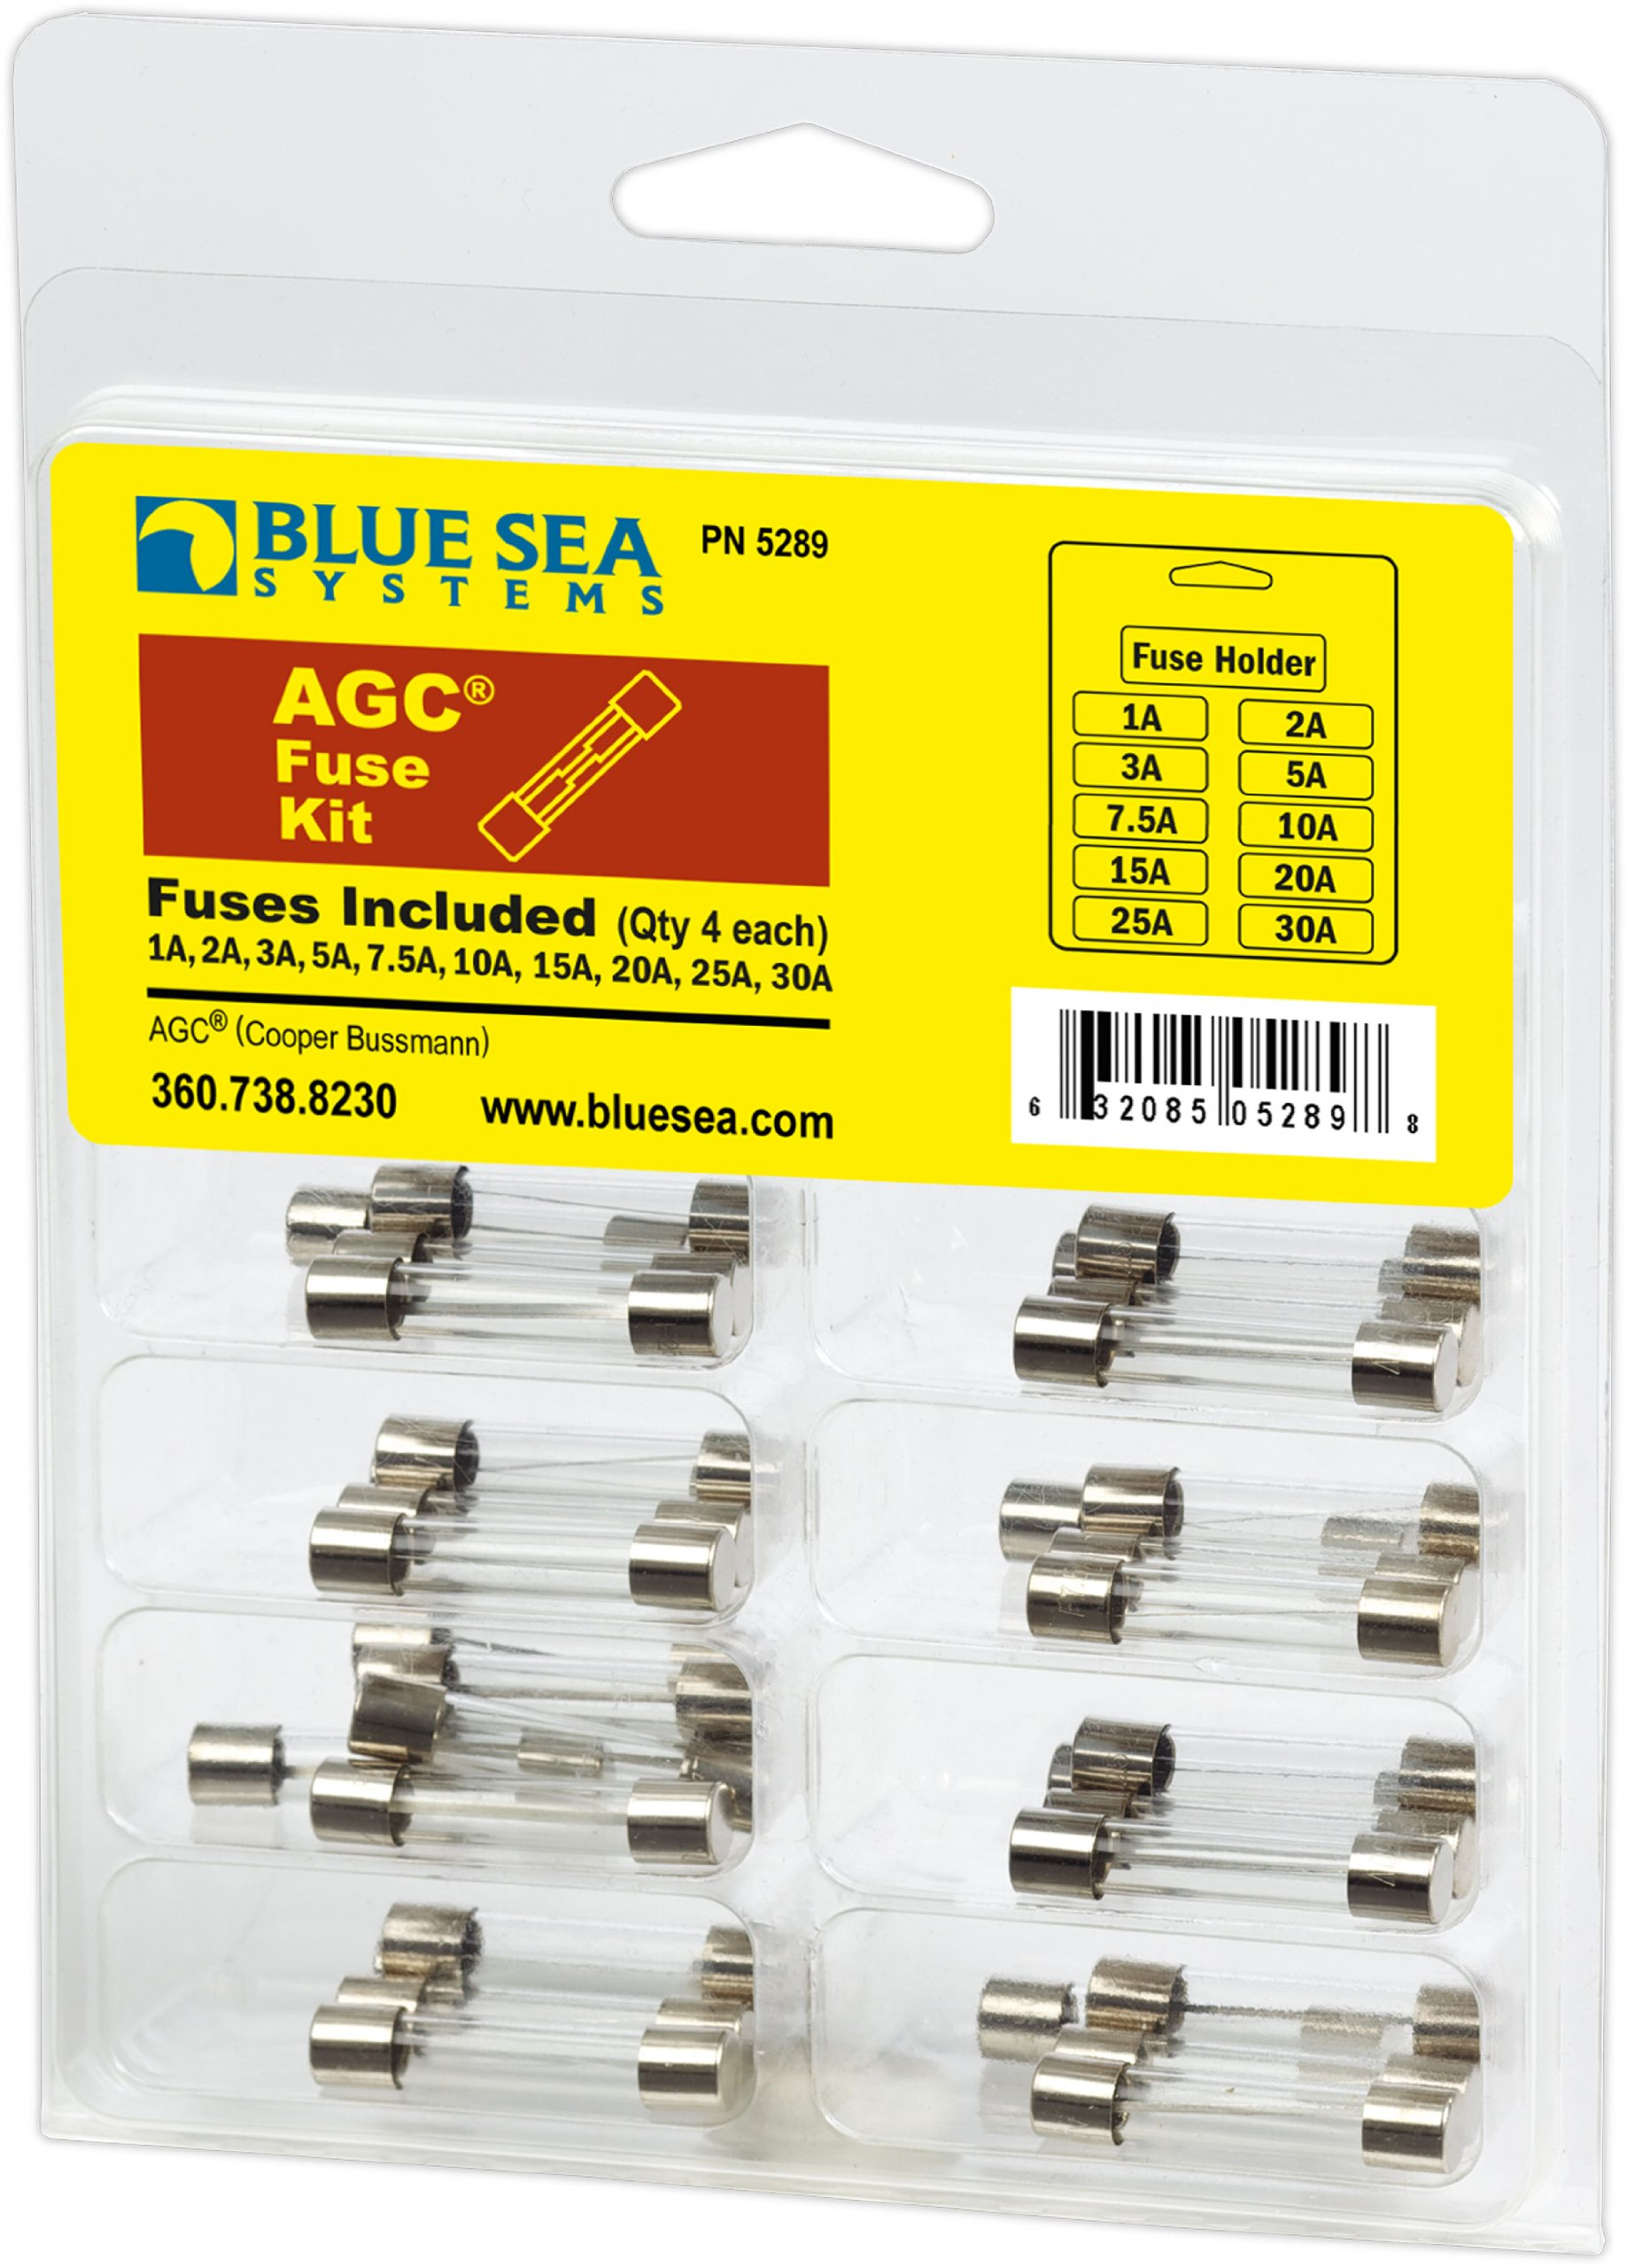 Blue Sea Systems AGC Fuse Kit (41-Piece)